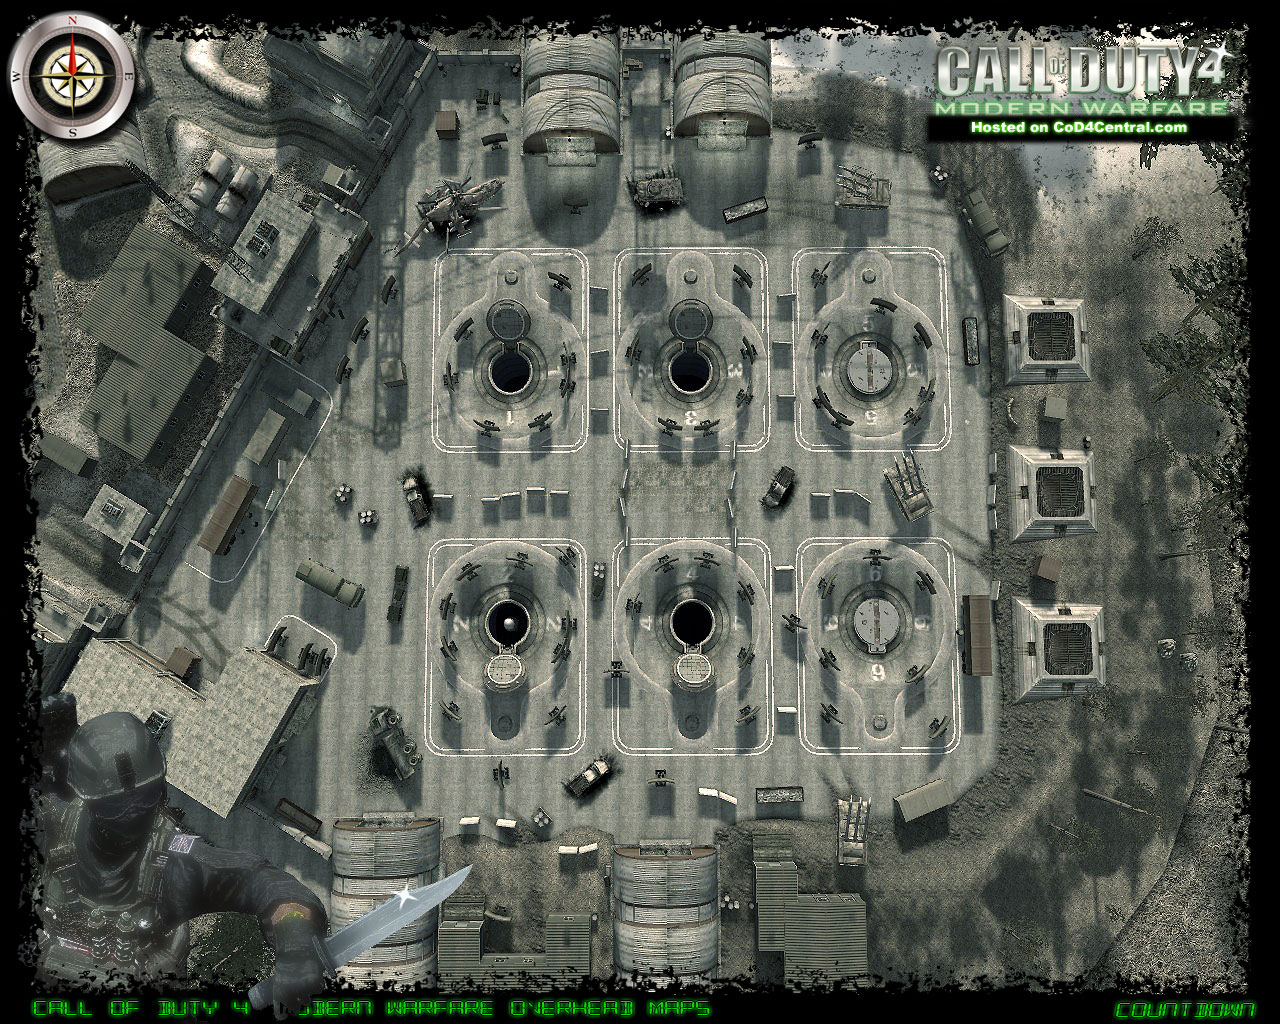 CoD4 Countdown Ultra High Resolution Map Image